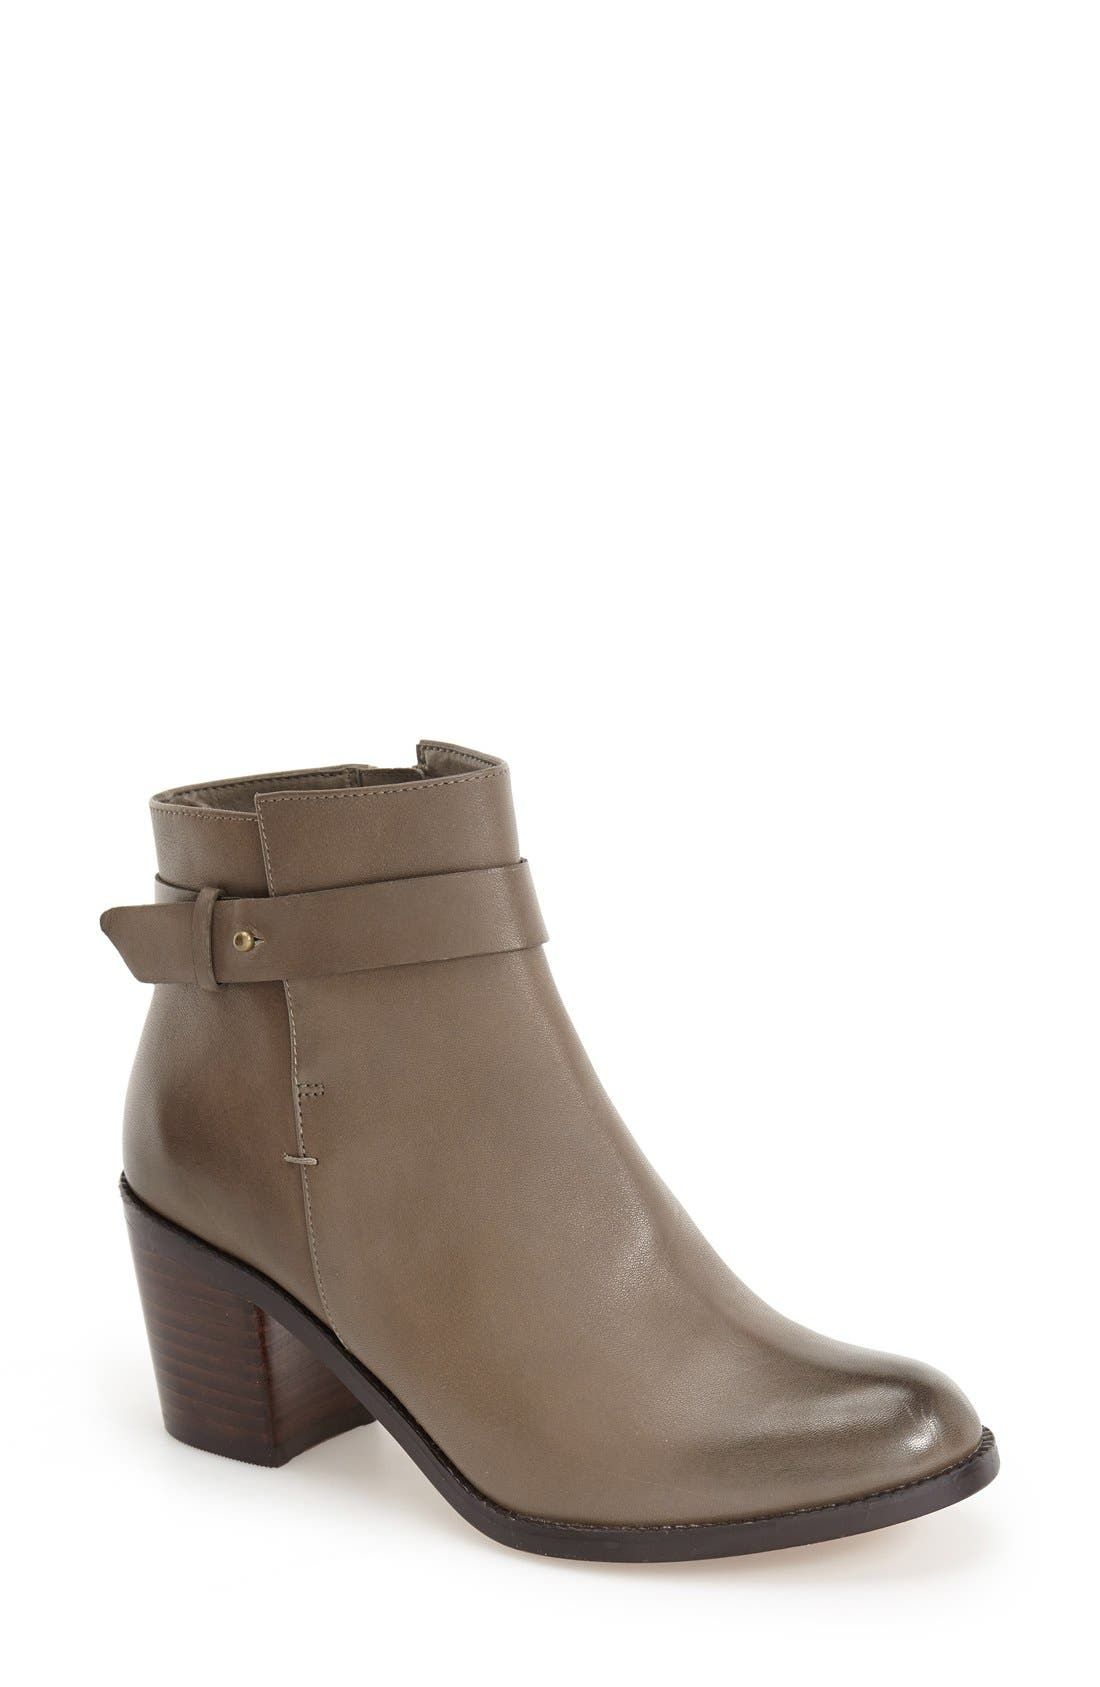 Main Image - Halogen® 'Glenna' Leather Ankle Bootie (Women)